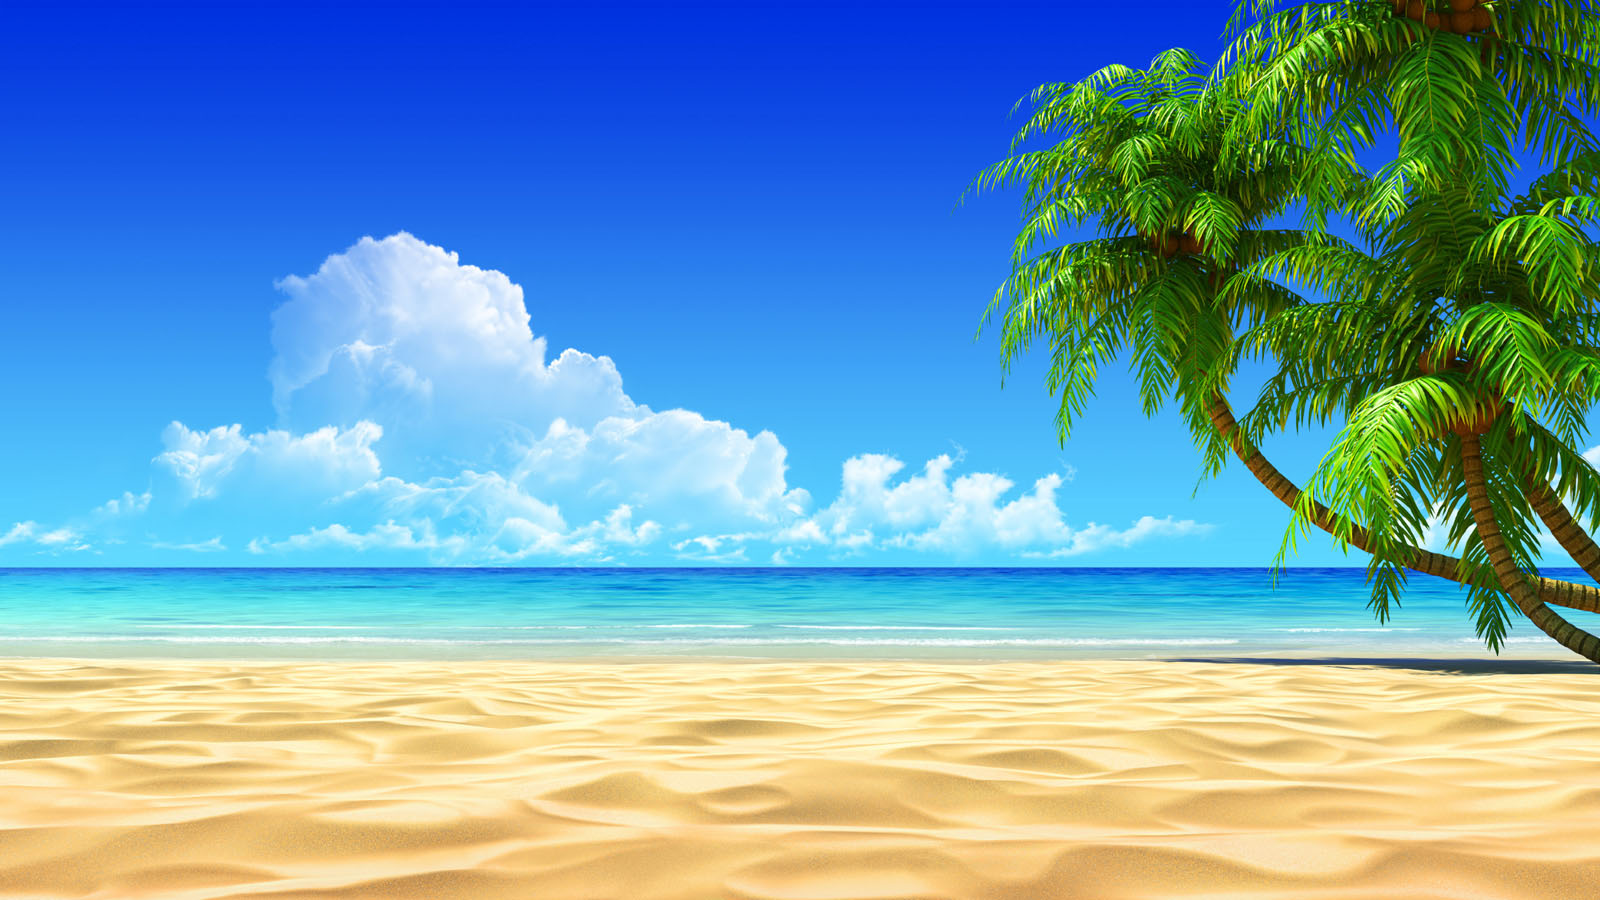 45 Beach Wallpaper For Mobile And Desktop In Full HD For 1600x900